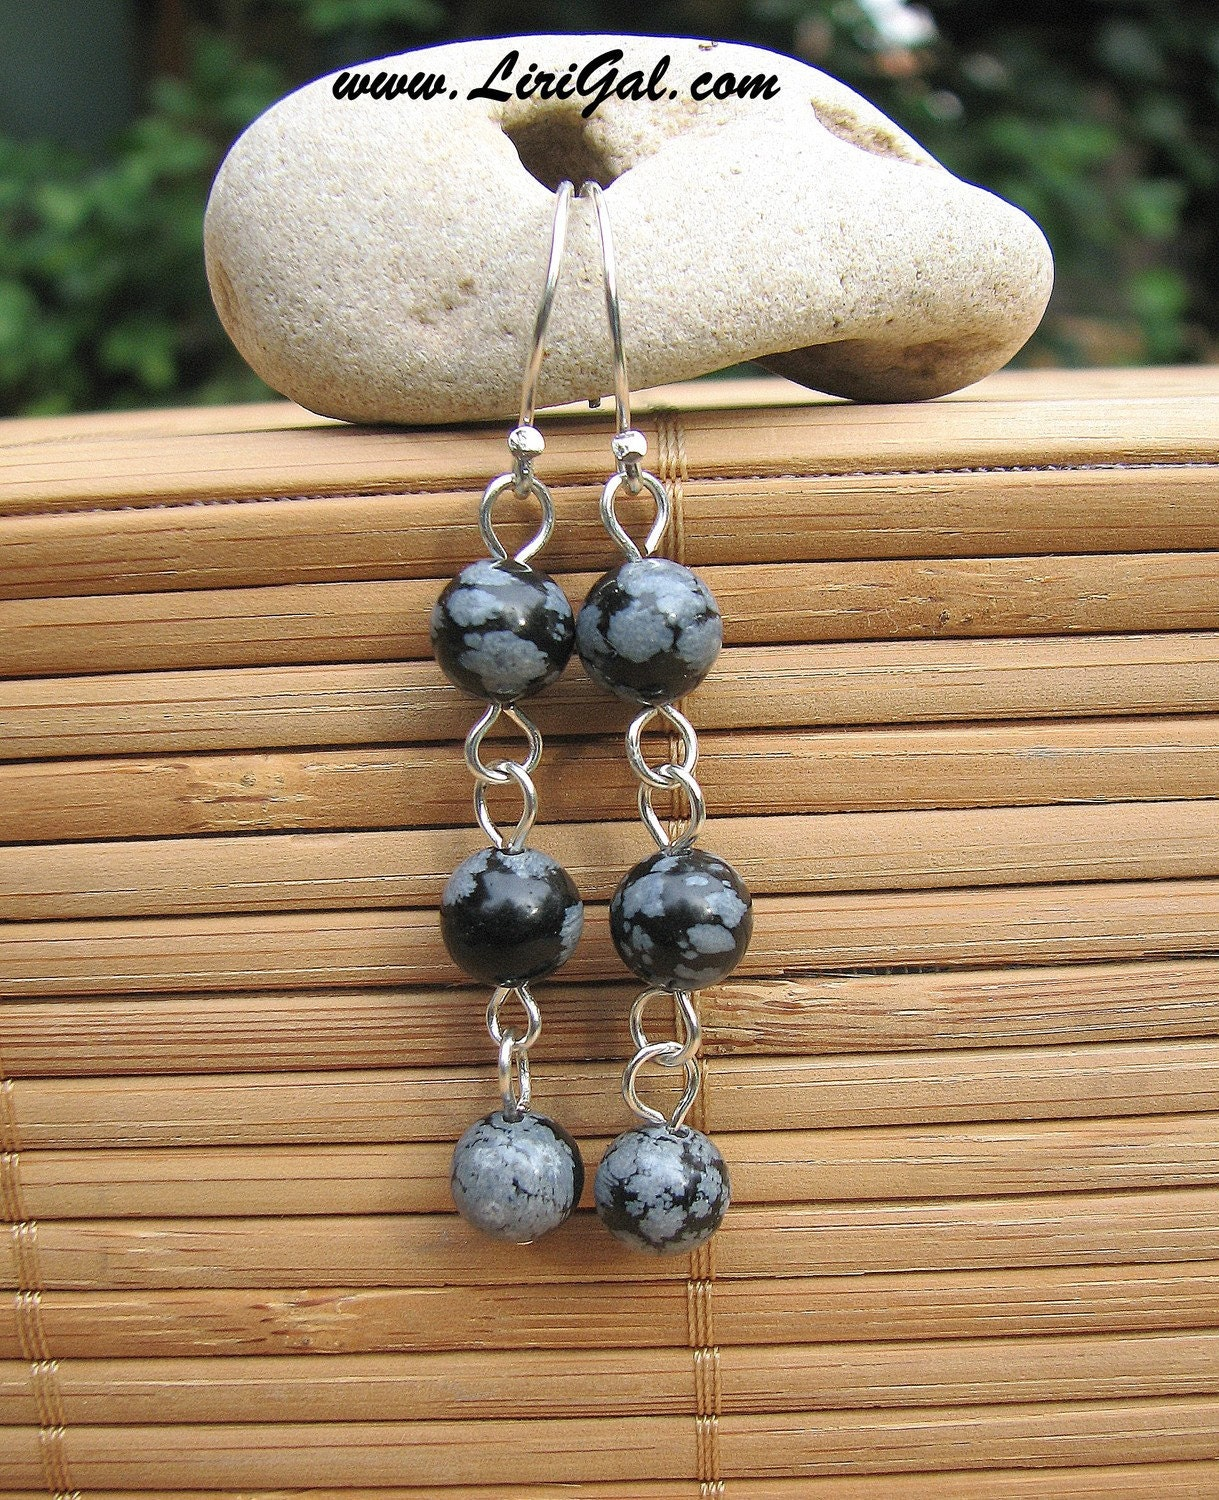 Snowflake Obsidian Sterling Silver Earrings.